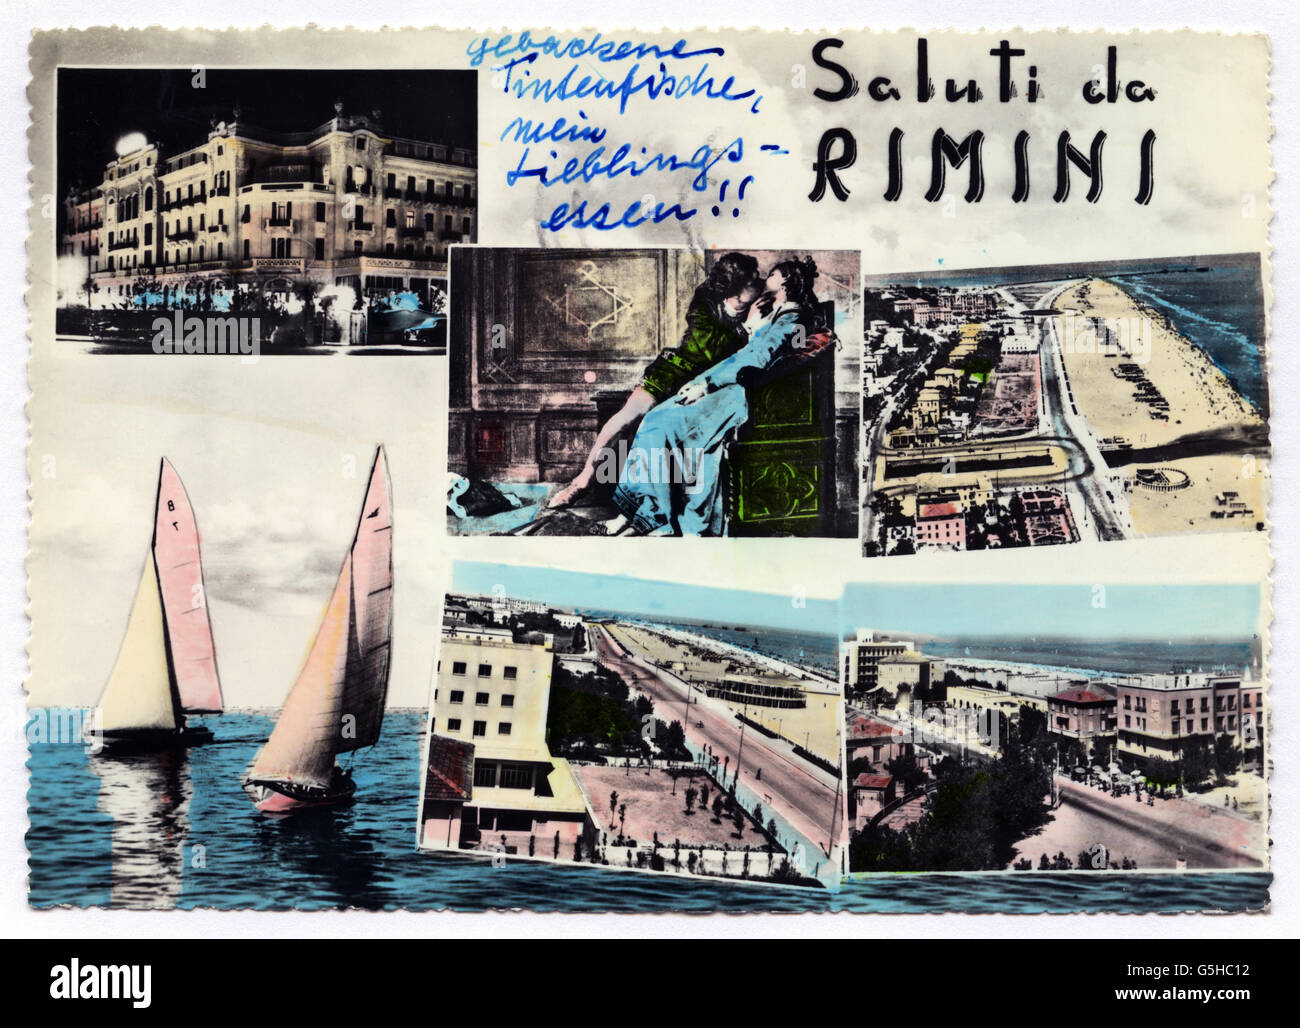 geography / travel, Italy, Rimini, tourism, picture postcard with different motifs from the tourist site, 'Saluti - Stock Image